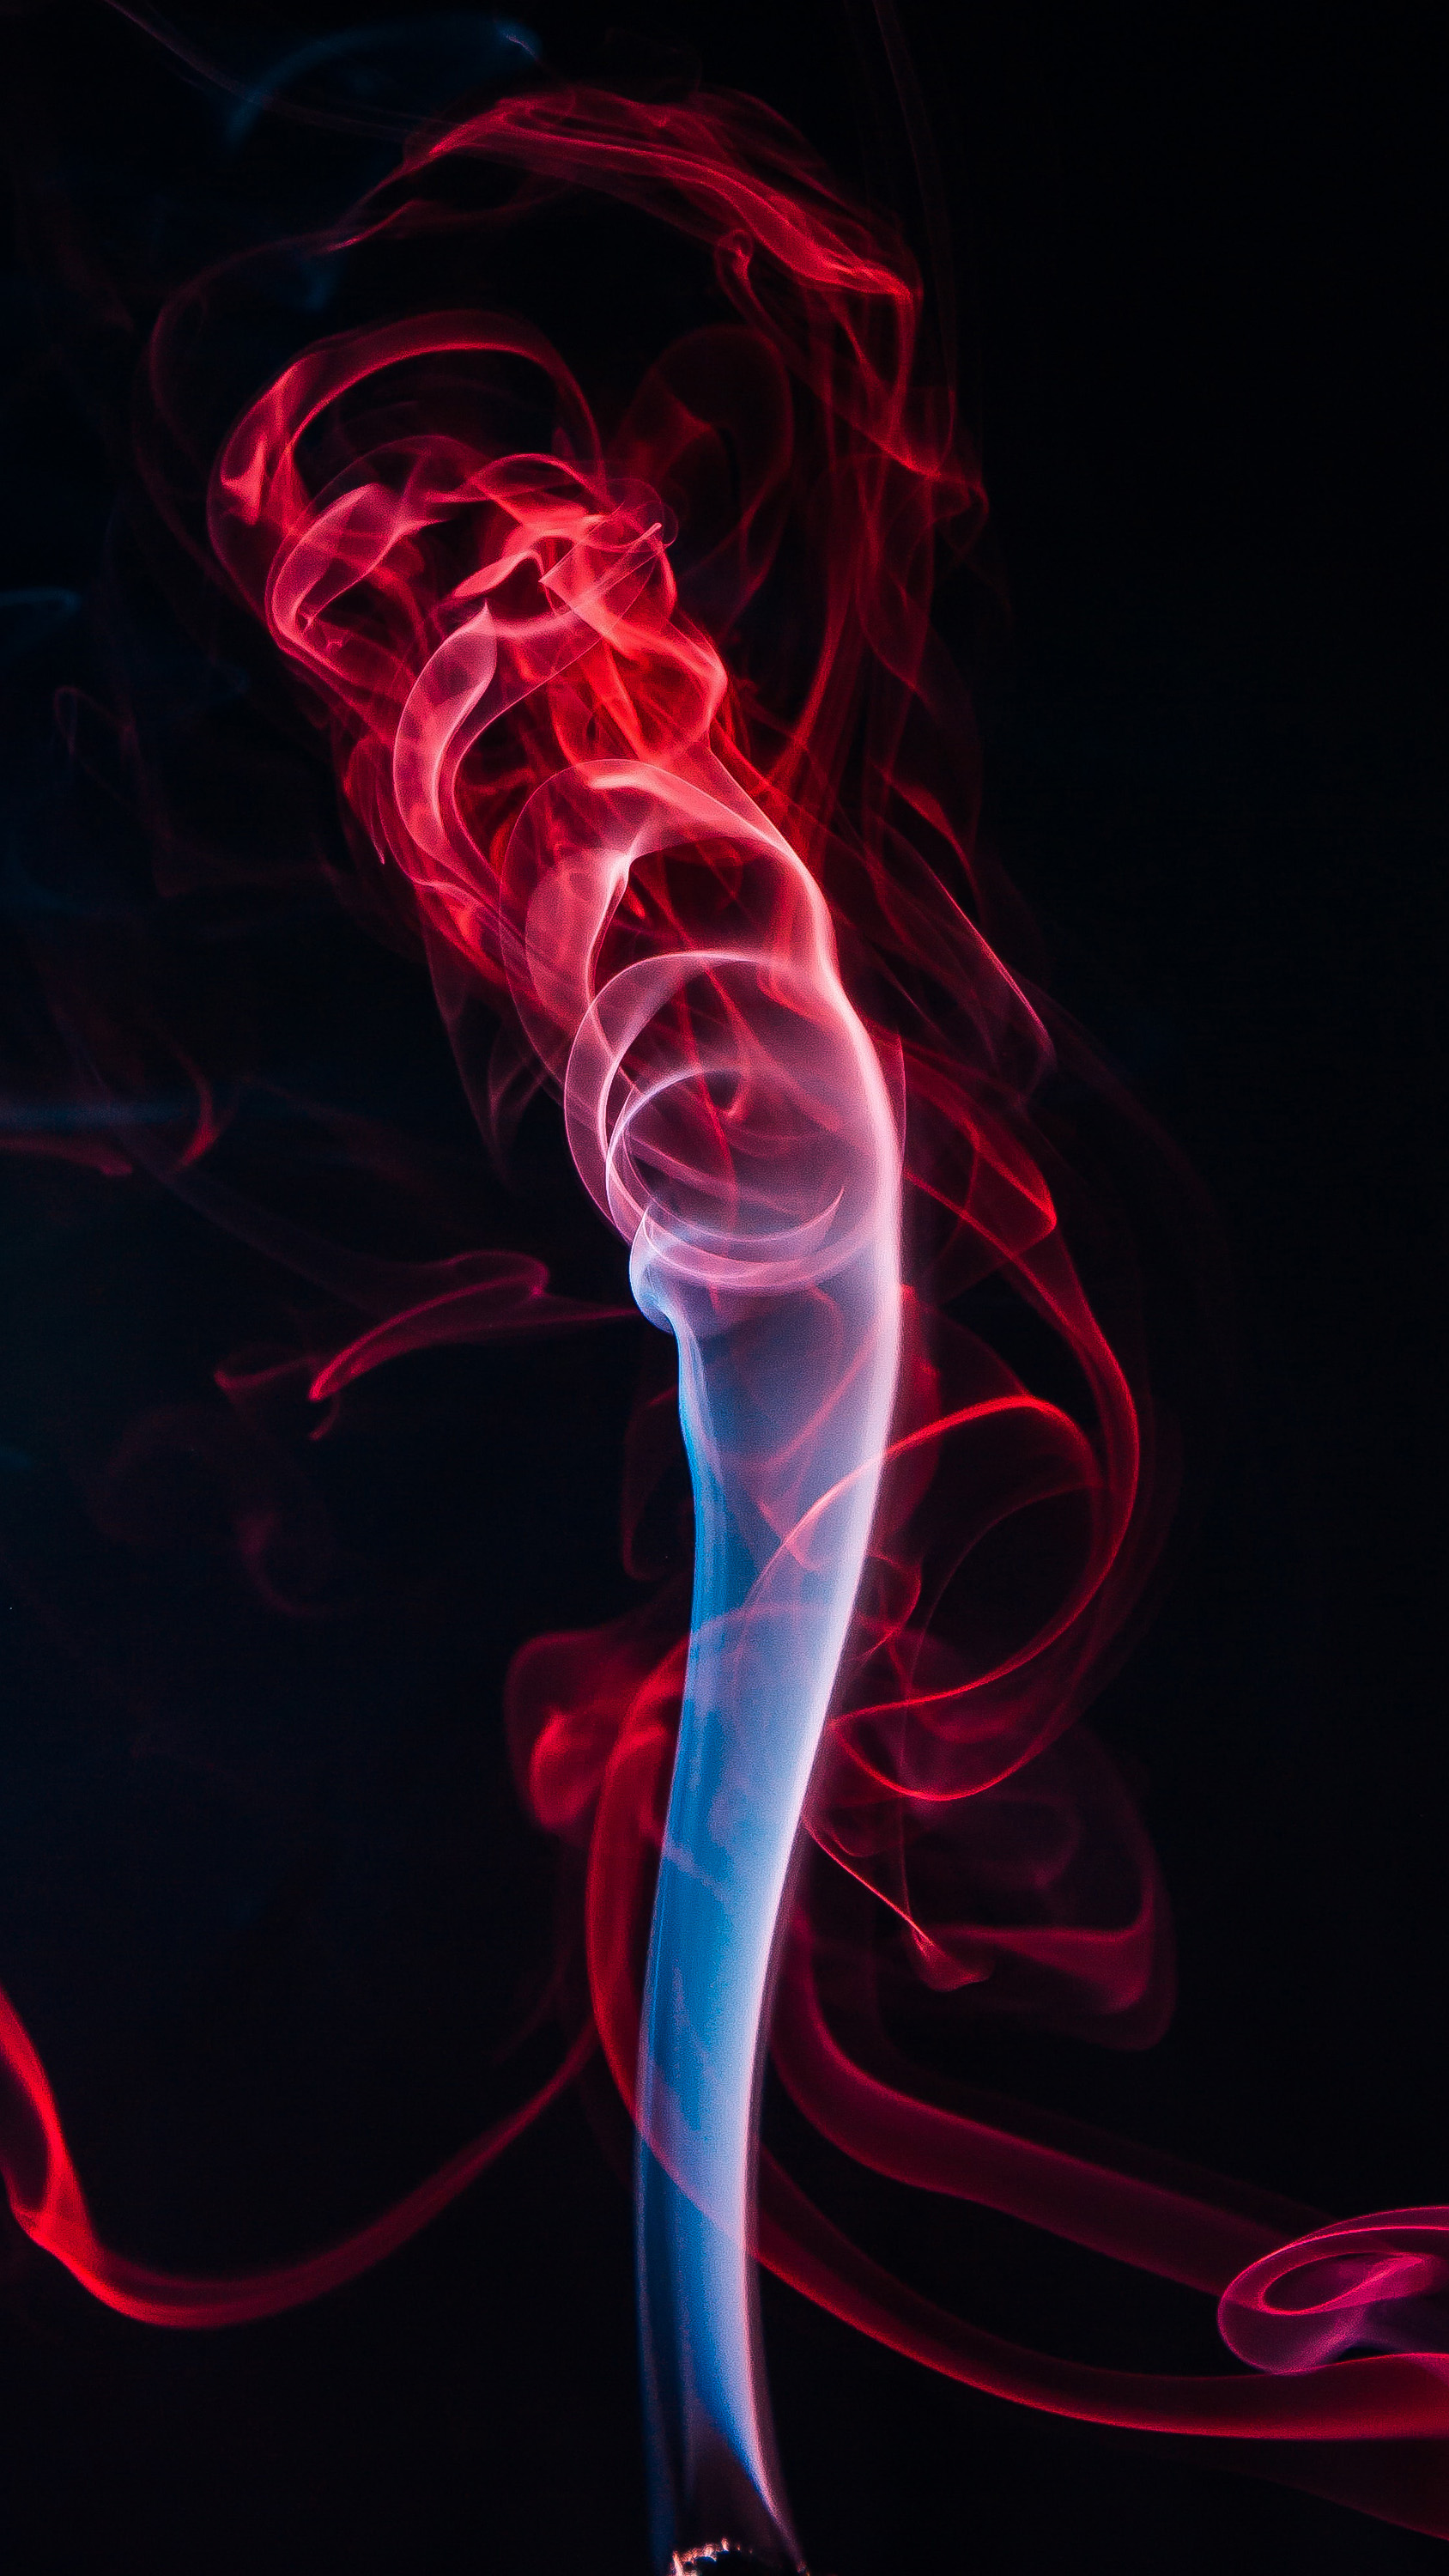 Galaxy Note 10 Wallpaper Galaxy Fold Note 11 S11 08 Black And Red Smoke Wallpaper Hd 2934156 Hd Wallpaper Backgrounds Download